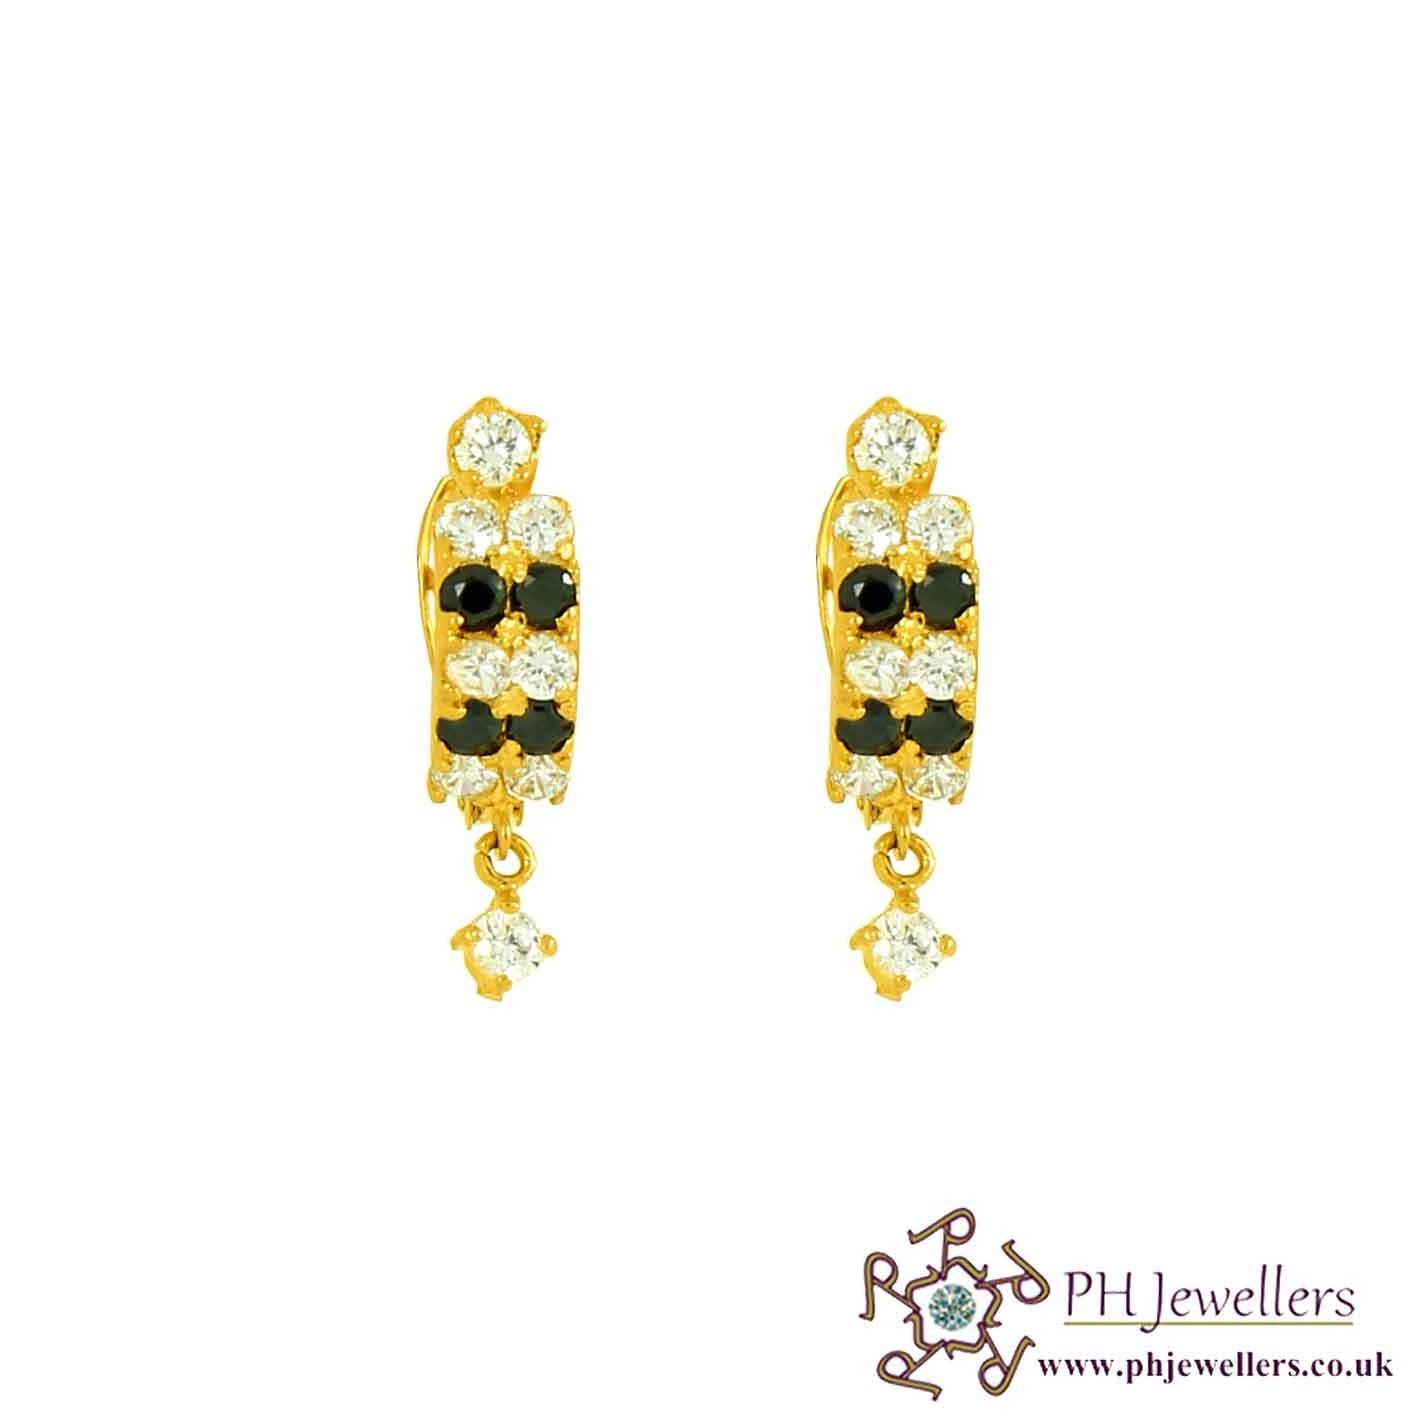 22ct 916 Hallmark Yellow Gold Clip-on Earring with Black white CZ CE37